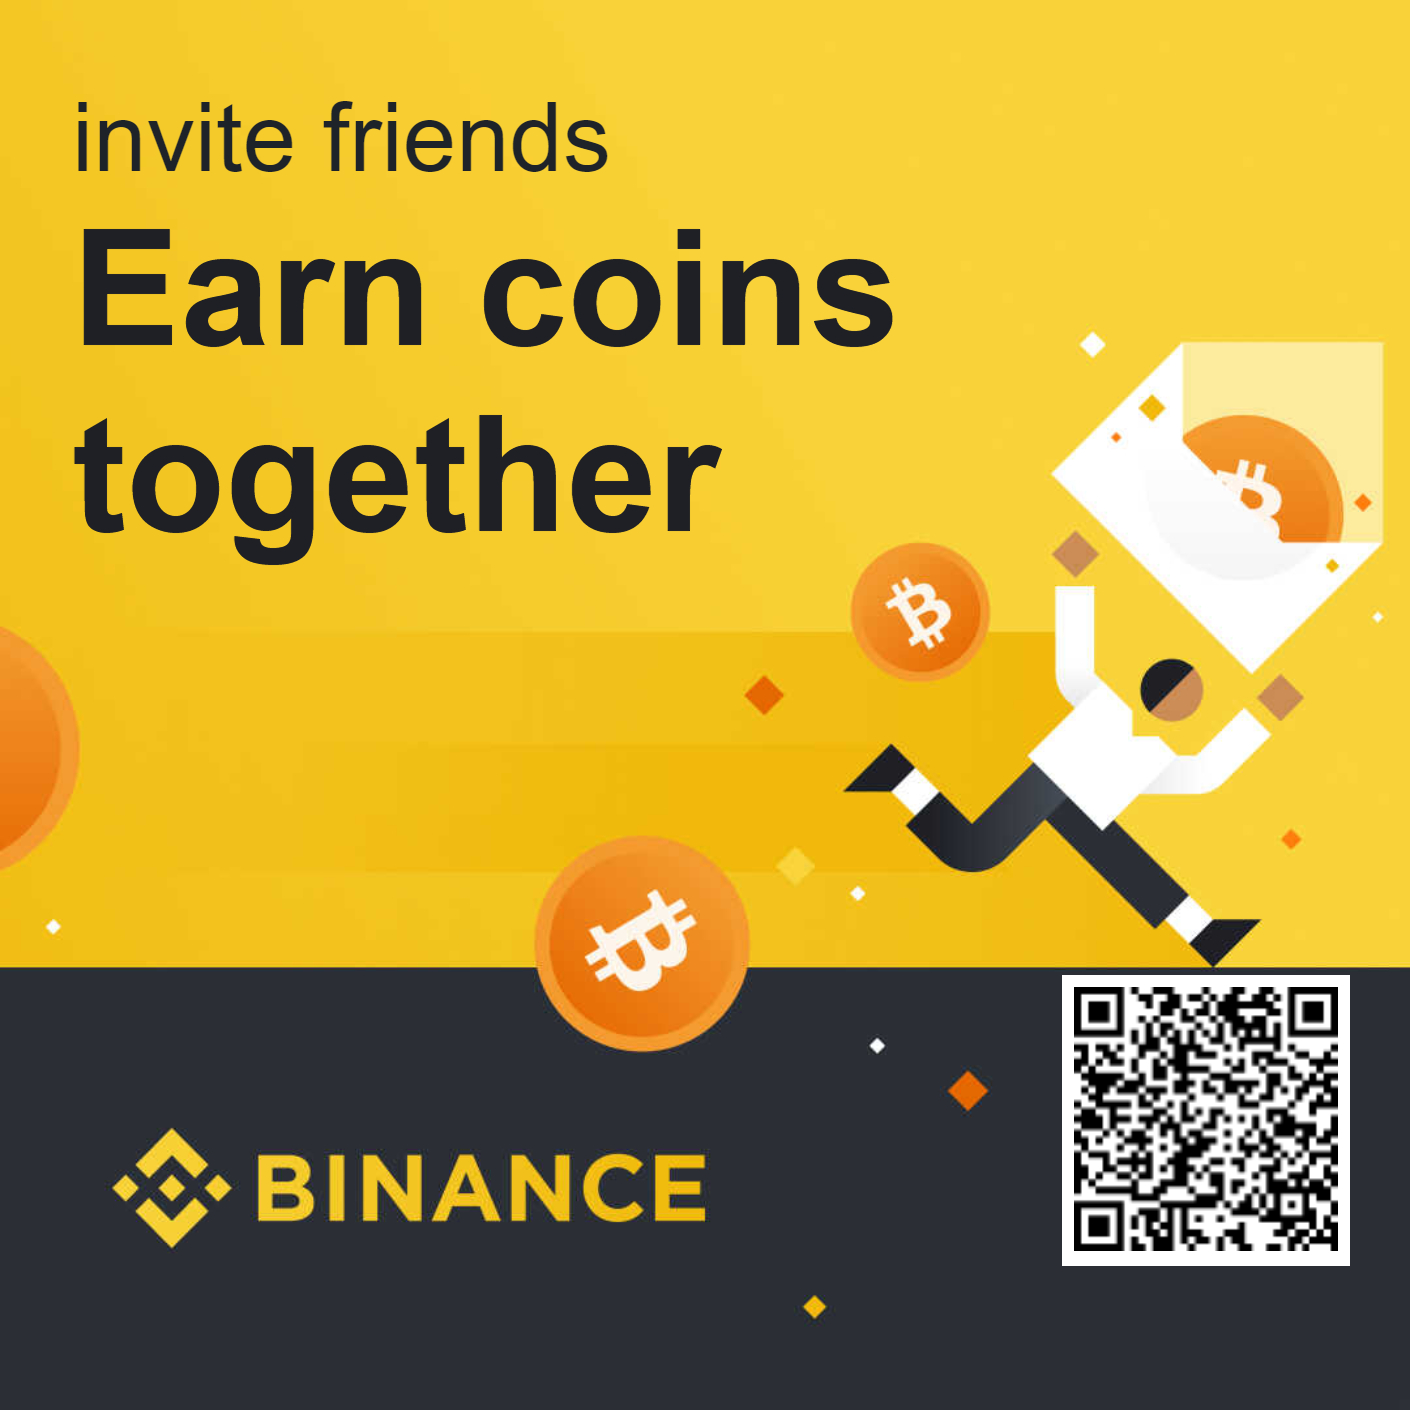 Earn up to 40% commission every time your friends make a trade on Binance.